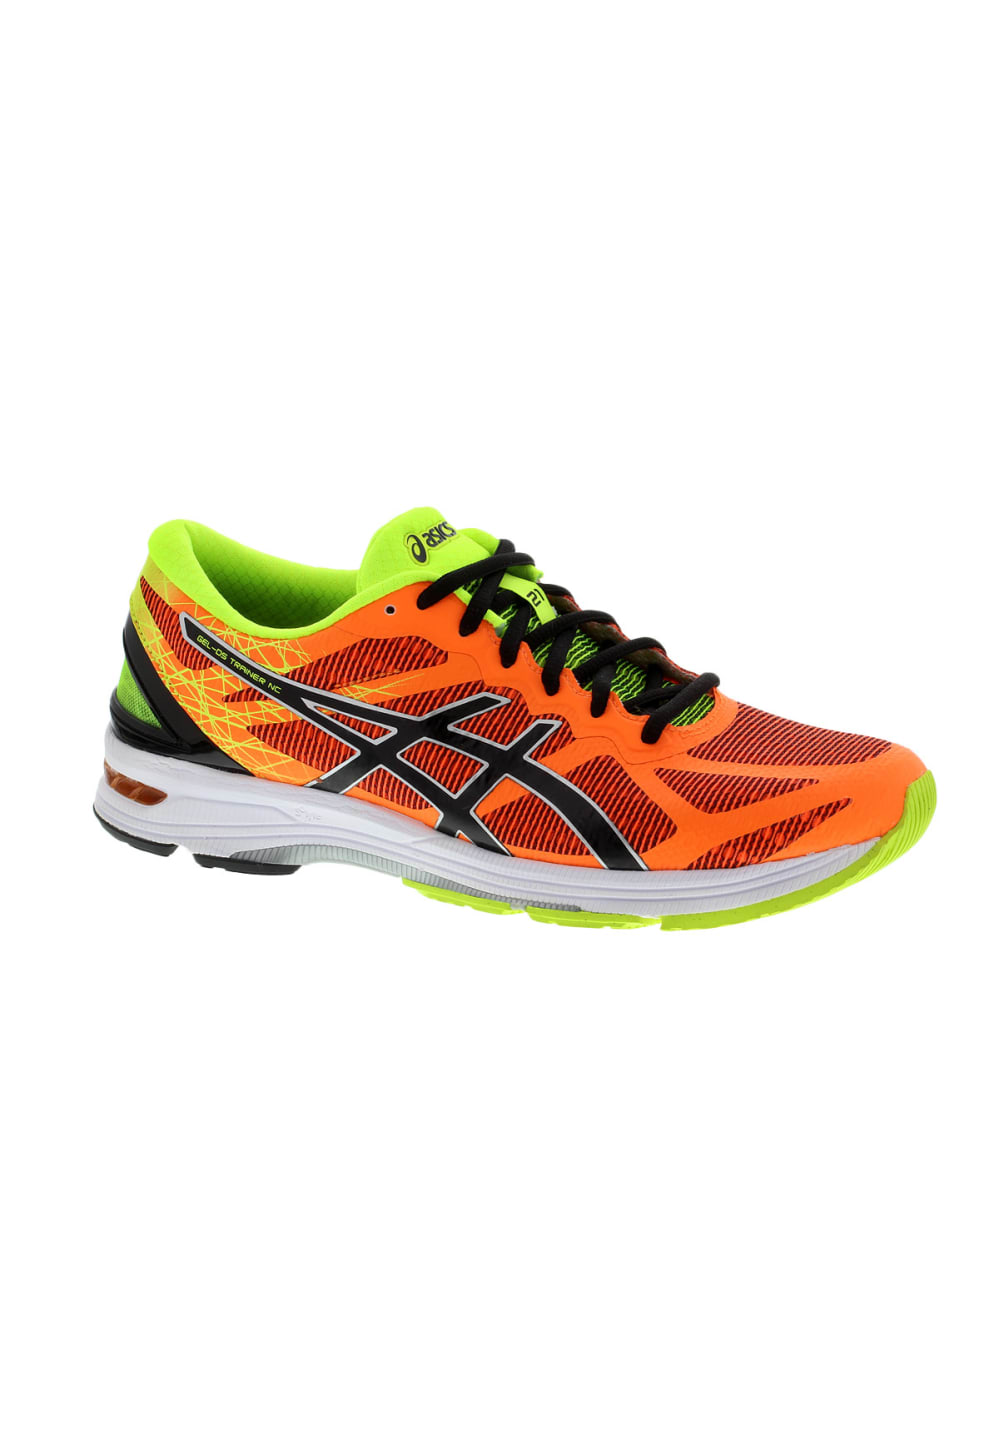 ASICS GEL-DS Trainer 21 Neutral - Laufschuhe für Herren - Orange